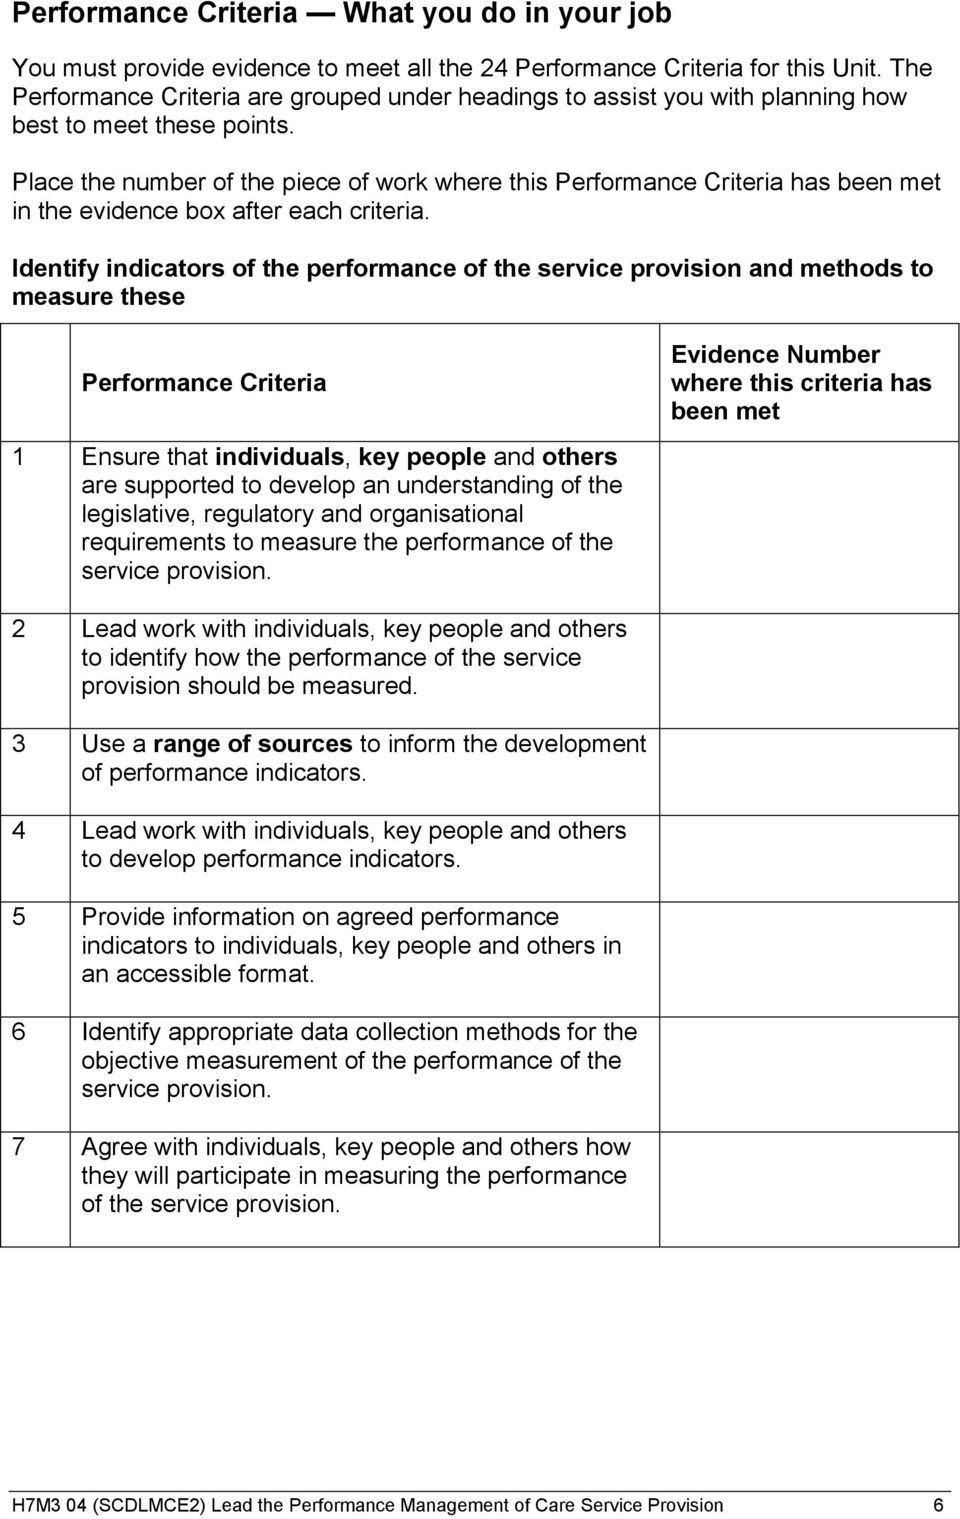 Place the number of the piece of work where this Performance Criteria has been met in the evidence box after each criteria.